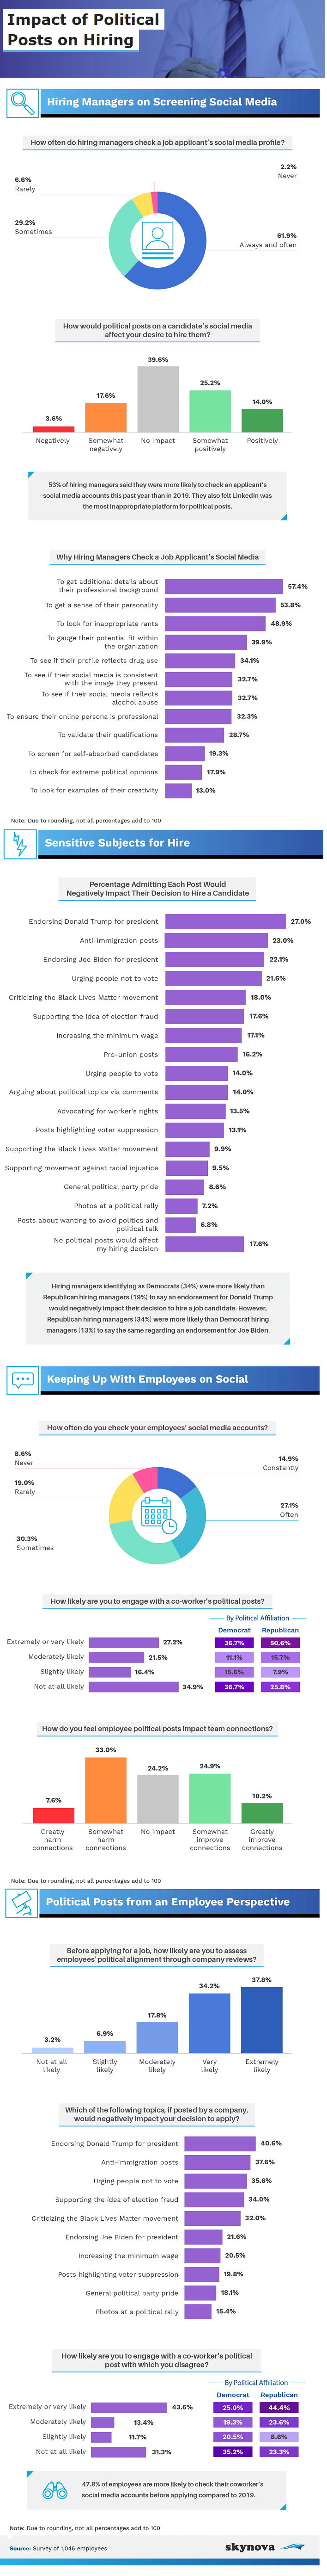 Results of survey into how employers are using social media as a research tool